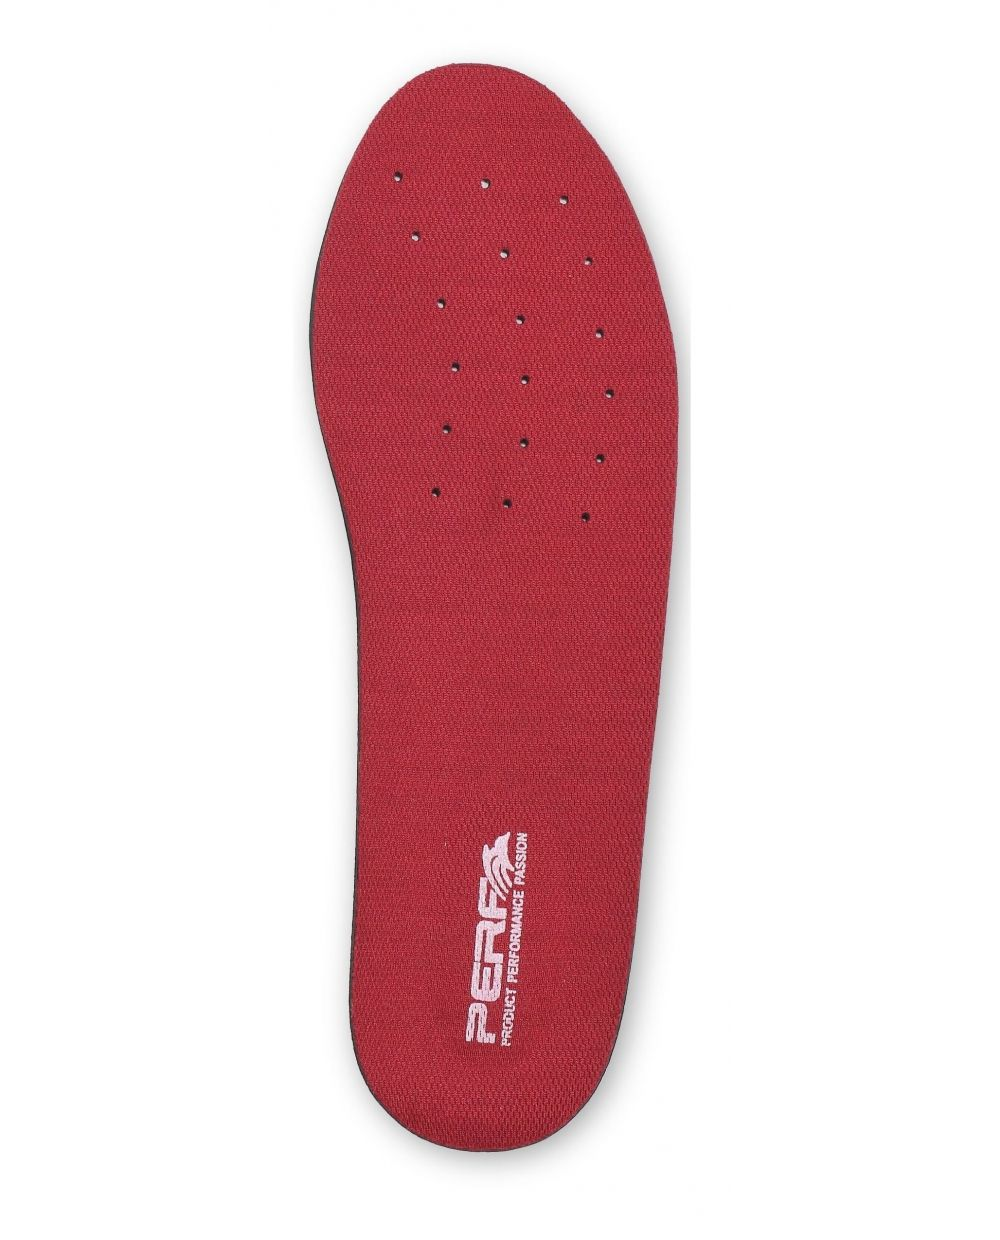 Closed Cell PU Insole